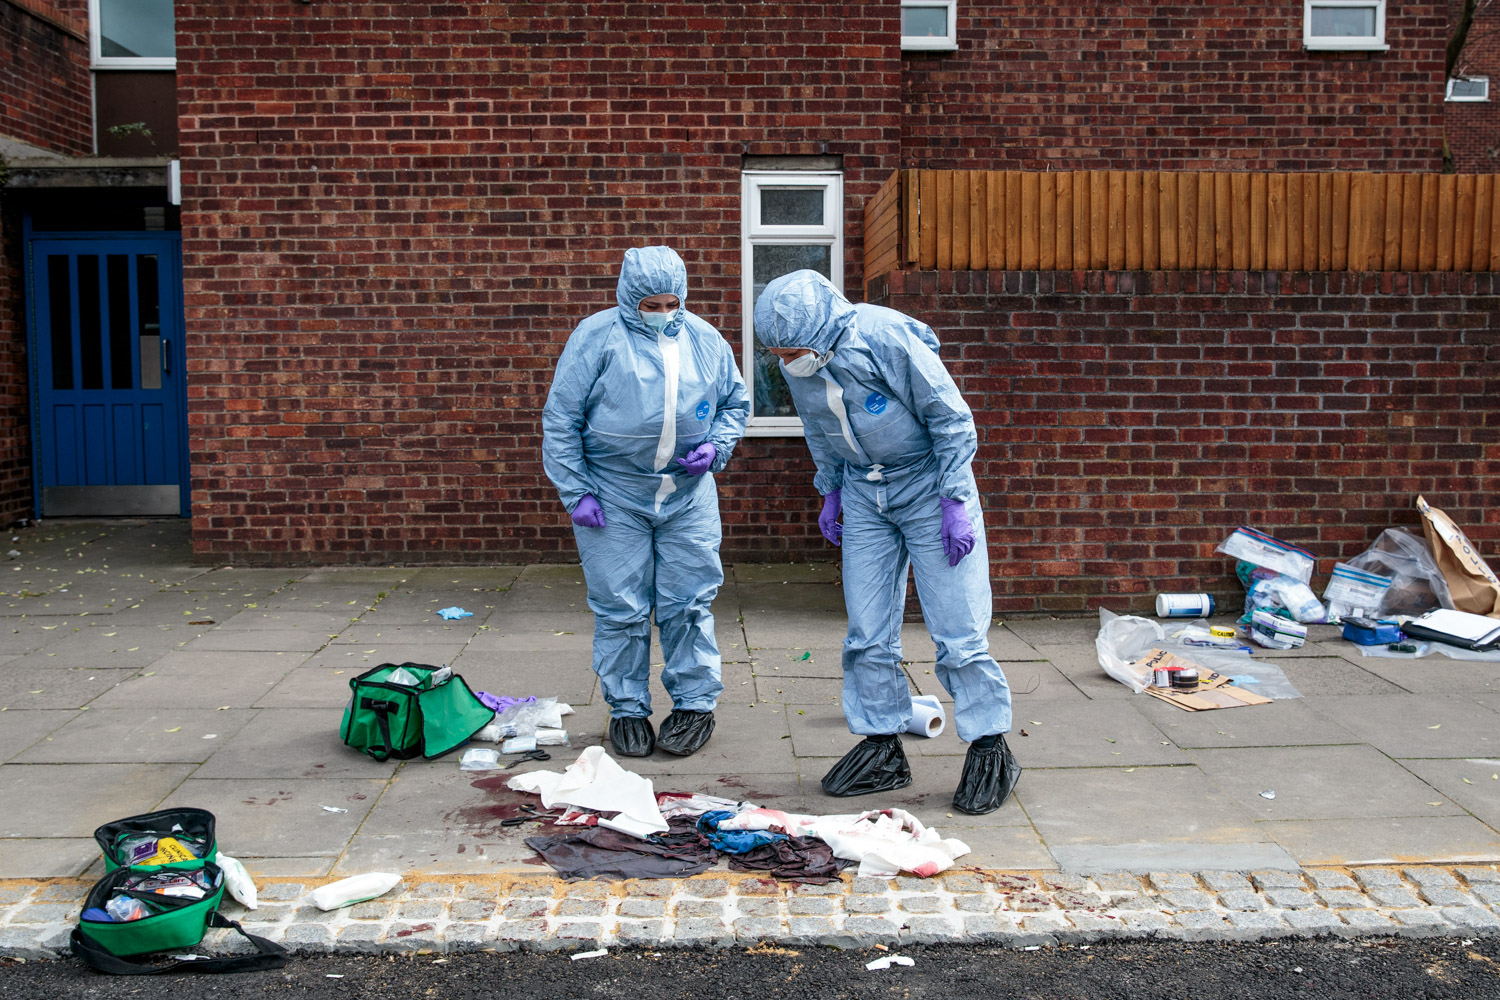 LONDON, ENGLAND: Forensics teams work at the scene of a stabbing in Edmonton on March 31, 2019.